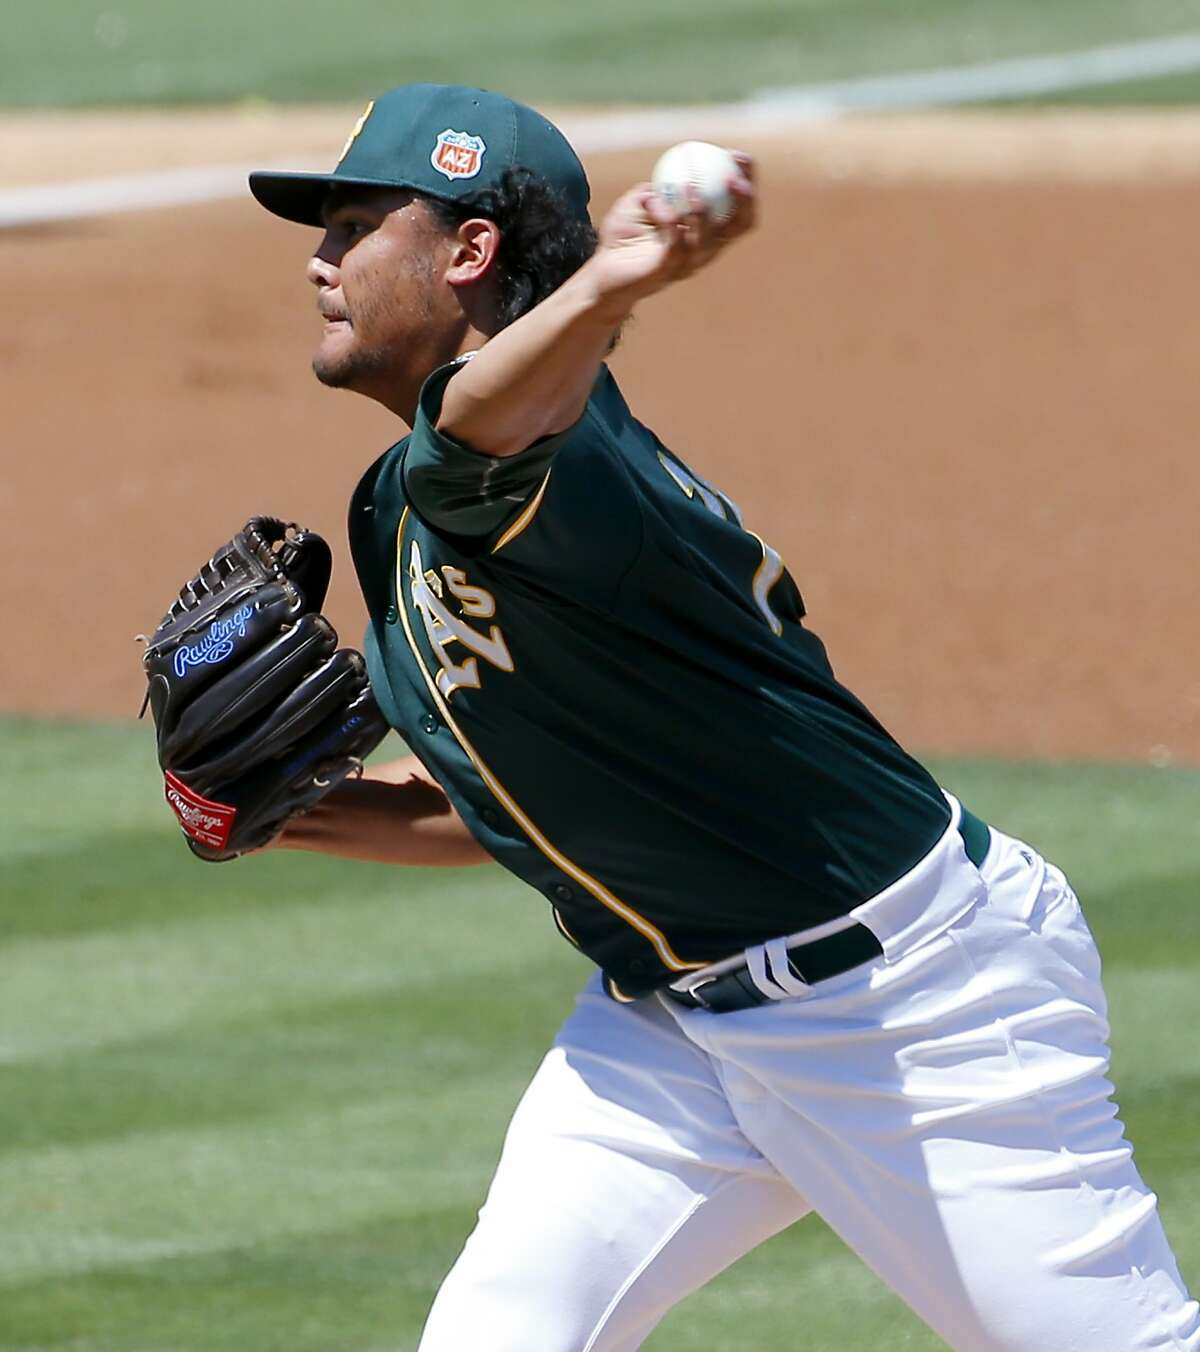 Oakland A's pitcher Sean Manaea throws against the Los Angeles Angels during the first inning of a spring training baseball game, Friday, March 25, 2016, in Mesa, Ariz. (AP Photo/Matt York)